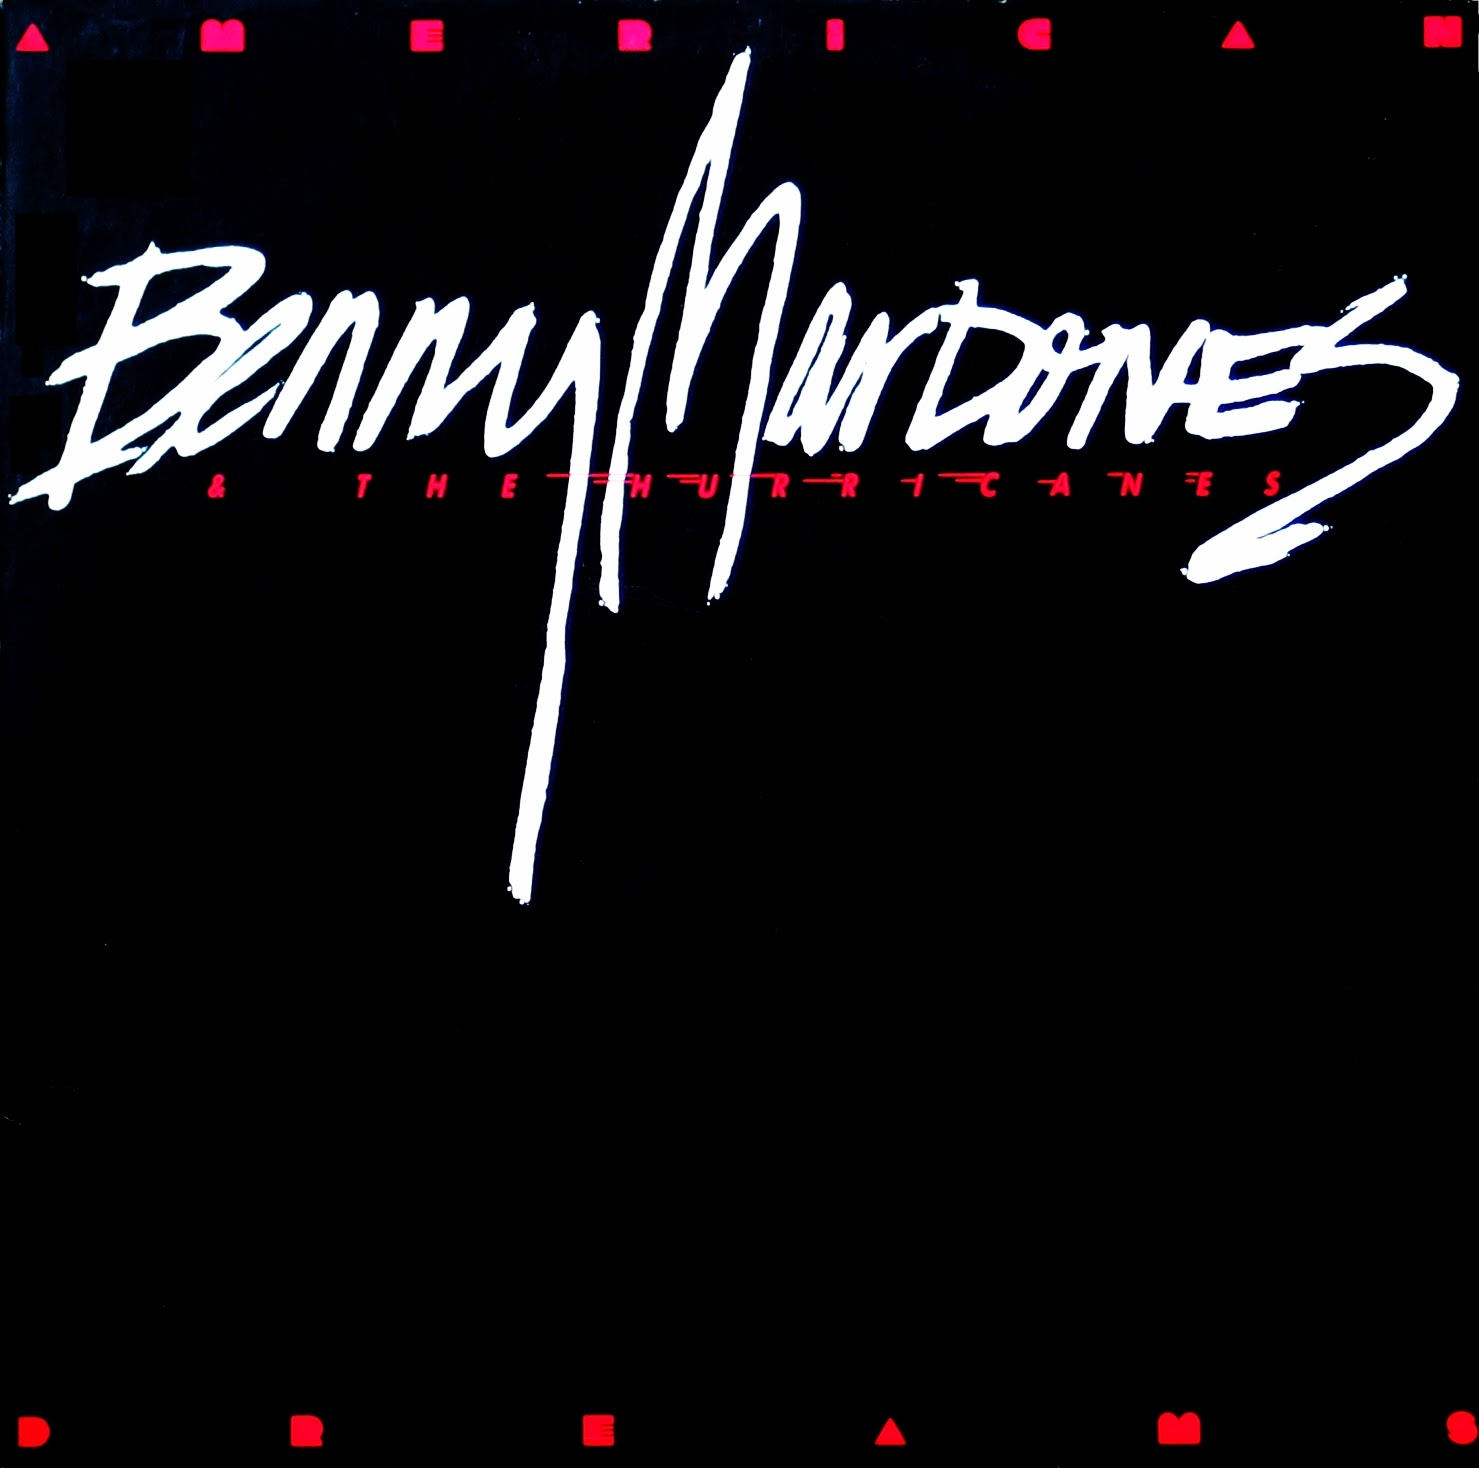 Benny Mardones The Hurricanes American dreams 1986